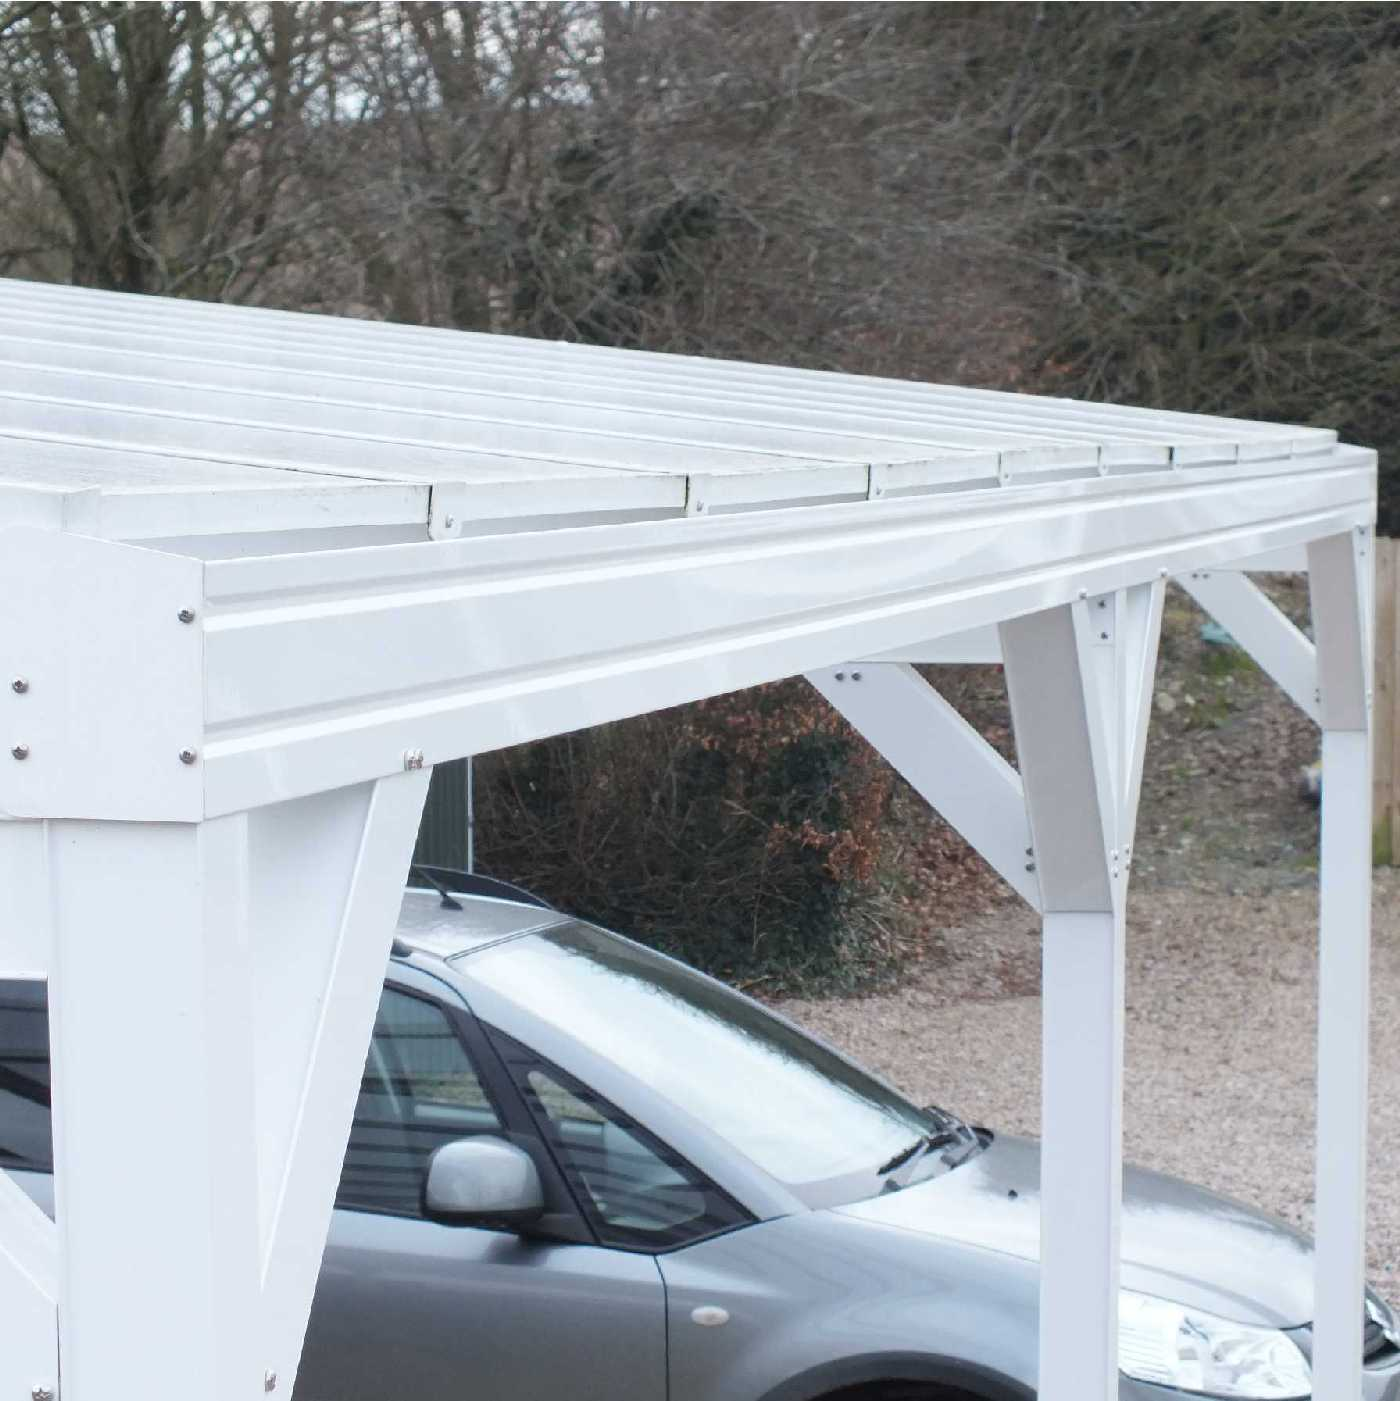 Omega Smart Free-Standing, MonoPitch Roof Canopy with 16mm Polycarbonate Glazing - 5.2m (W) x 2.0m (P), (6) Supporting Posts from Omega Build